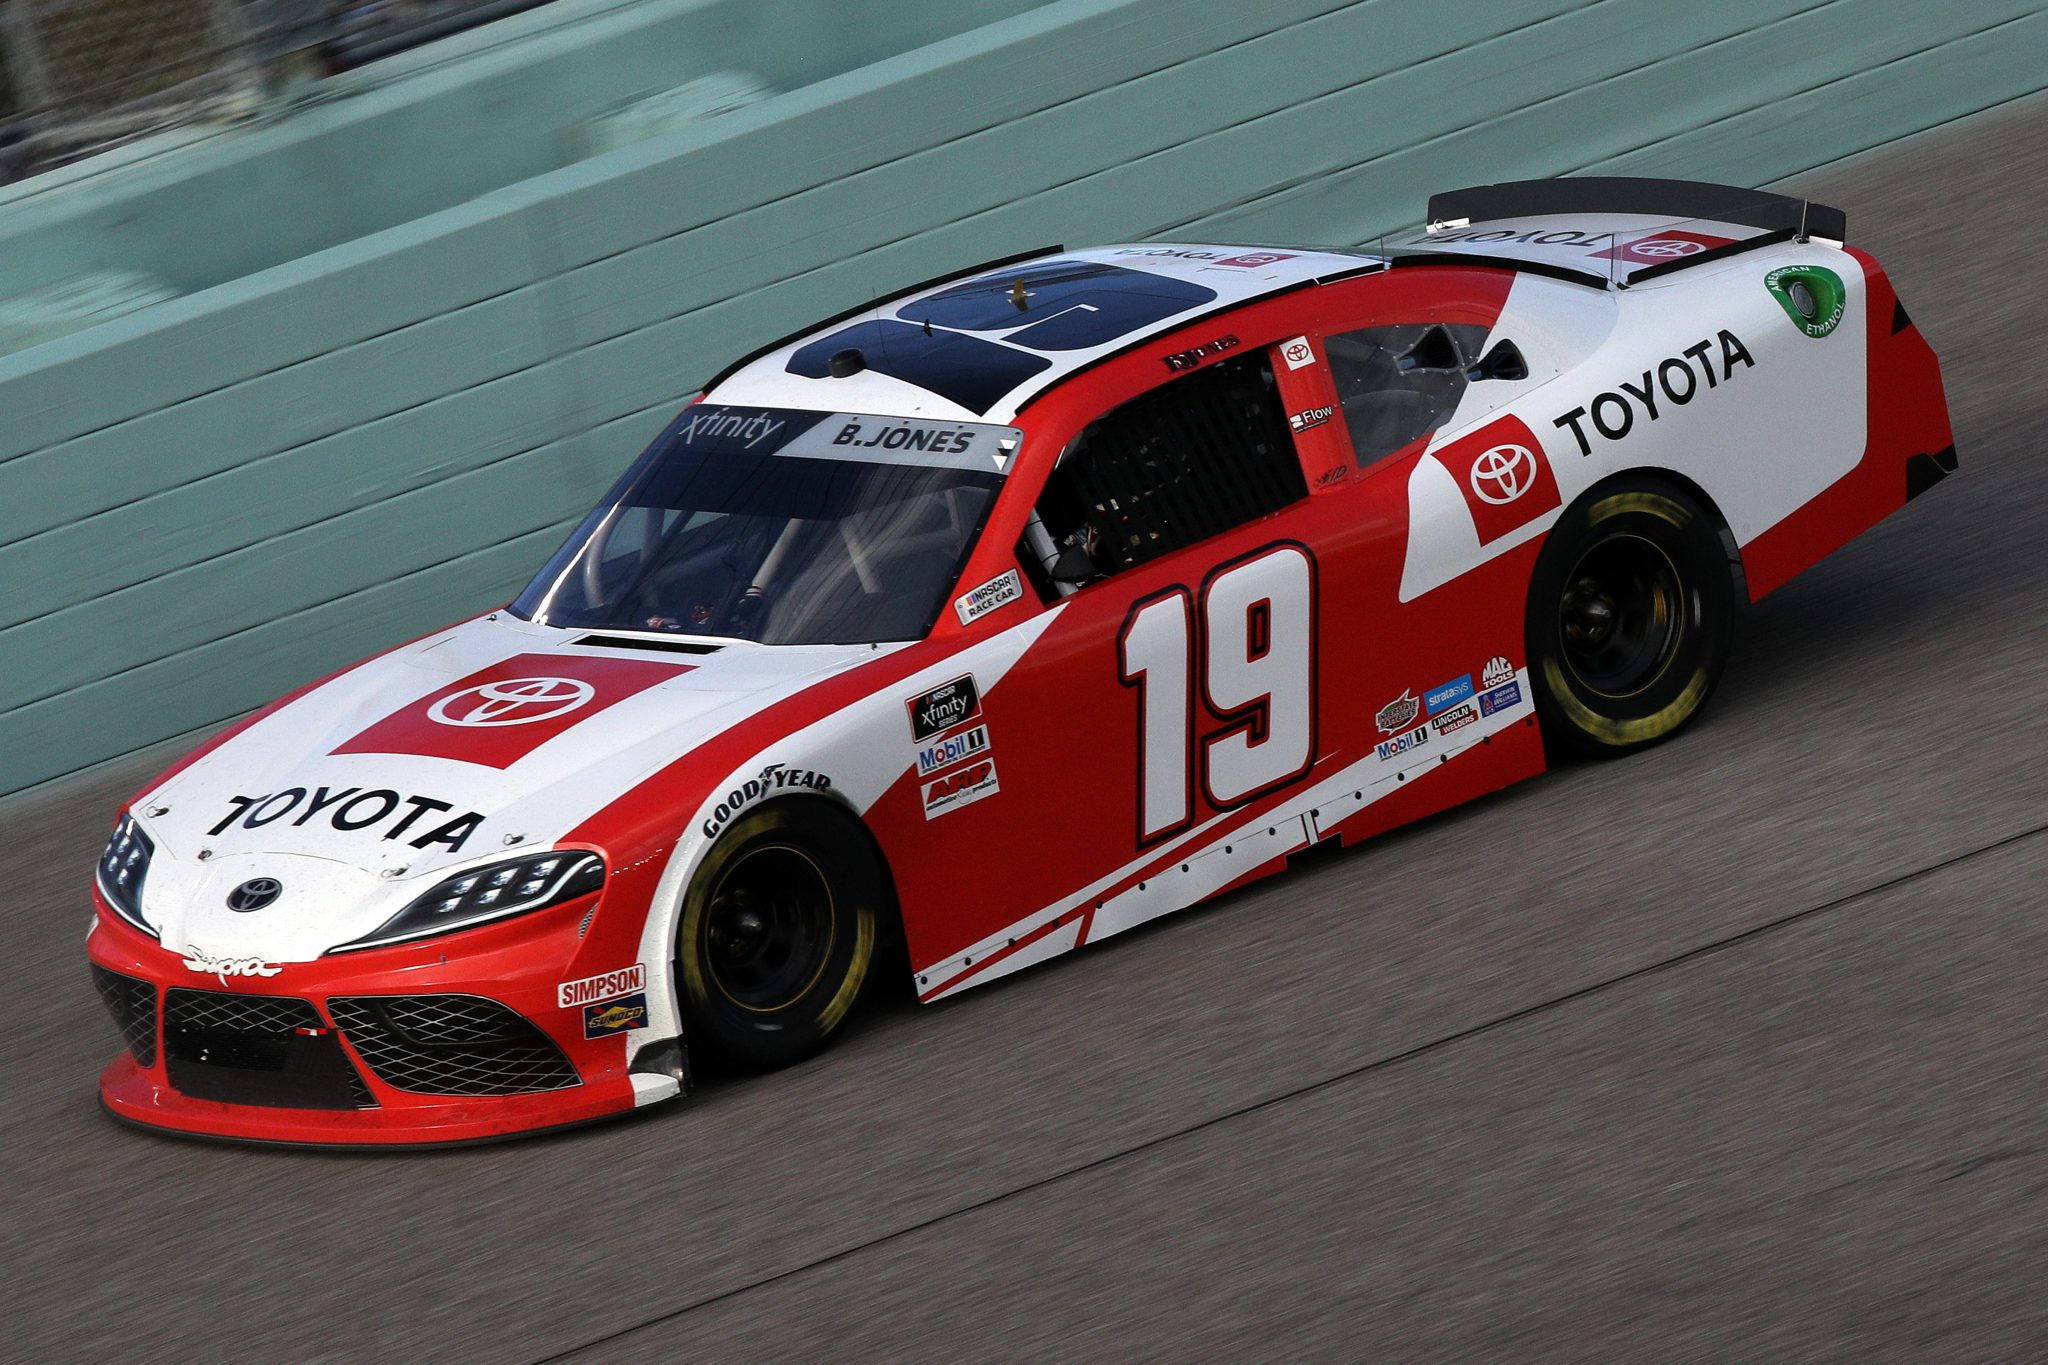 HOMESTEAD, FLORIDA - FEBRUARY 27: Brandon Jones, driver of the #19 Toyota Supra Toyota, drives during the NASCAR Xfinity Series Contender Boats 250 at Homestead-Miami Speedway on February 27, 2021 in Homestead, Florida. (Photo by Sean Gardner/Getty Images) | Getty Images